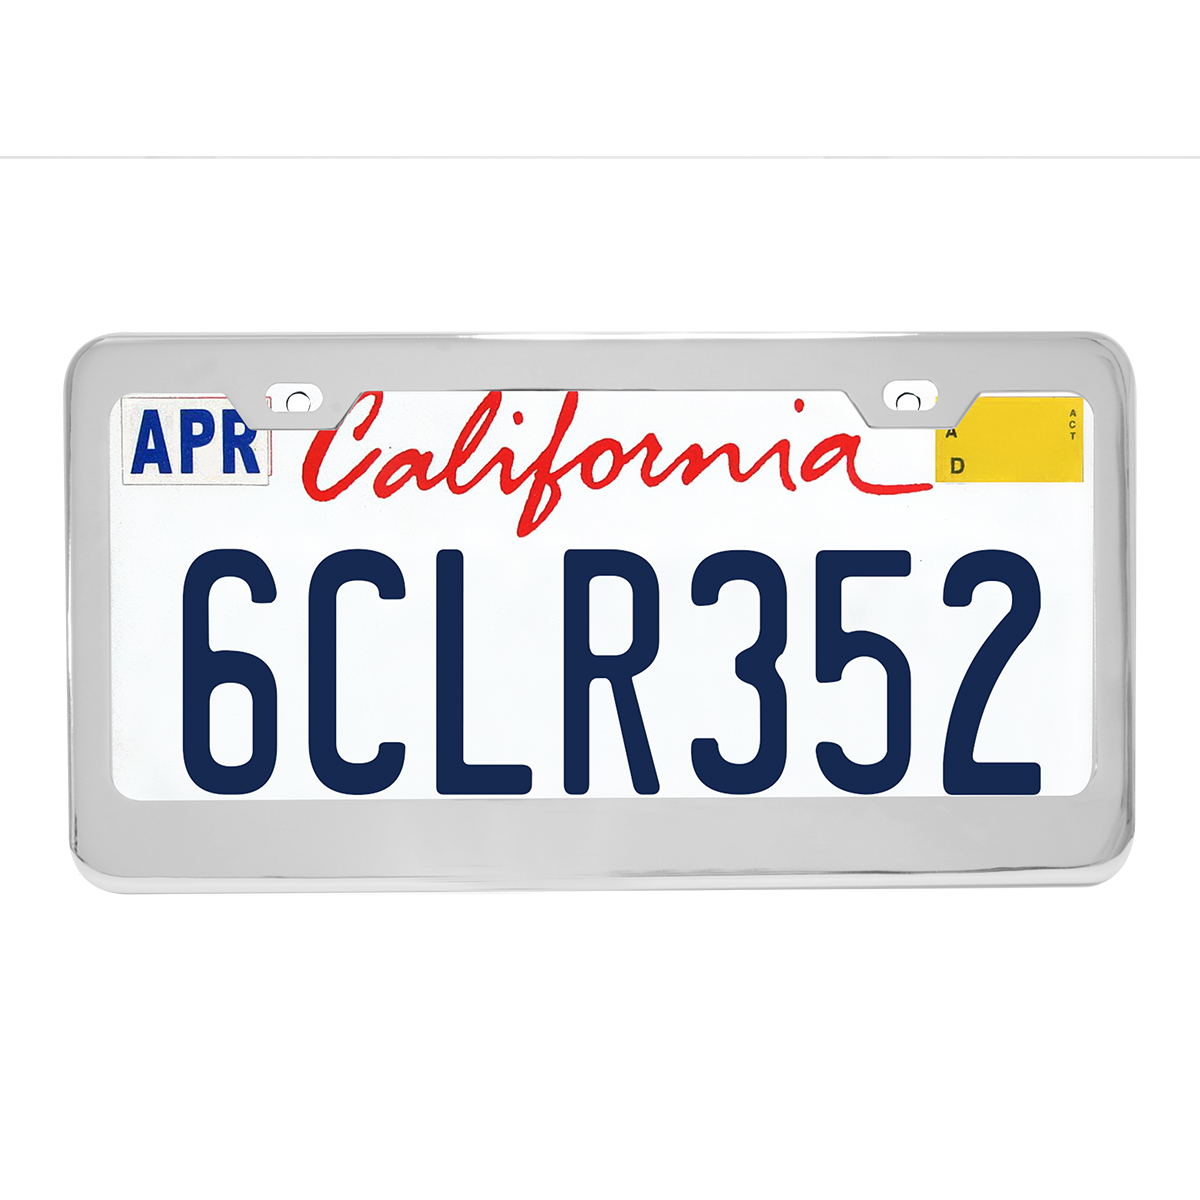 60440 Plain Chrome Plated Steel 2 Hole License Plate Frame - Profile View